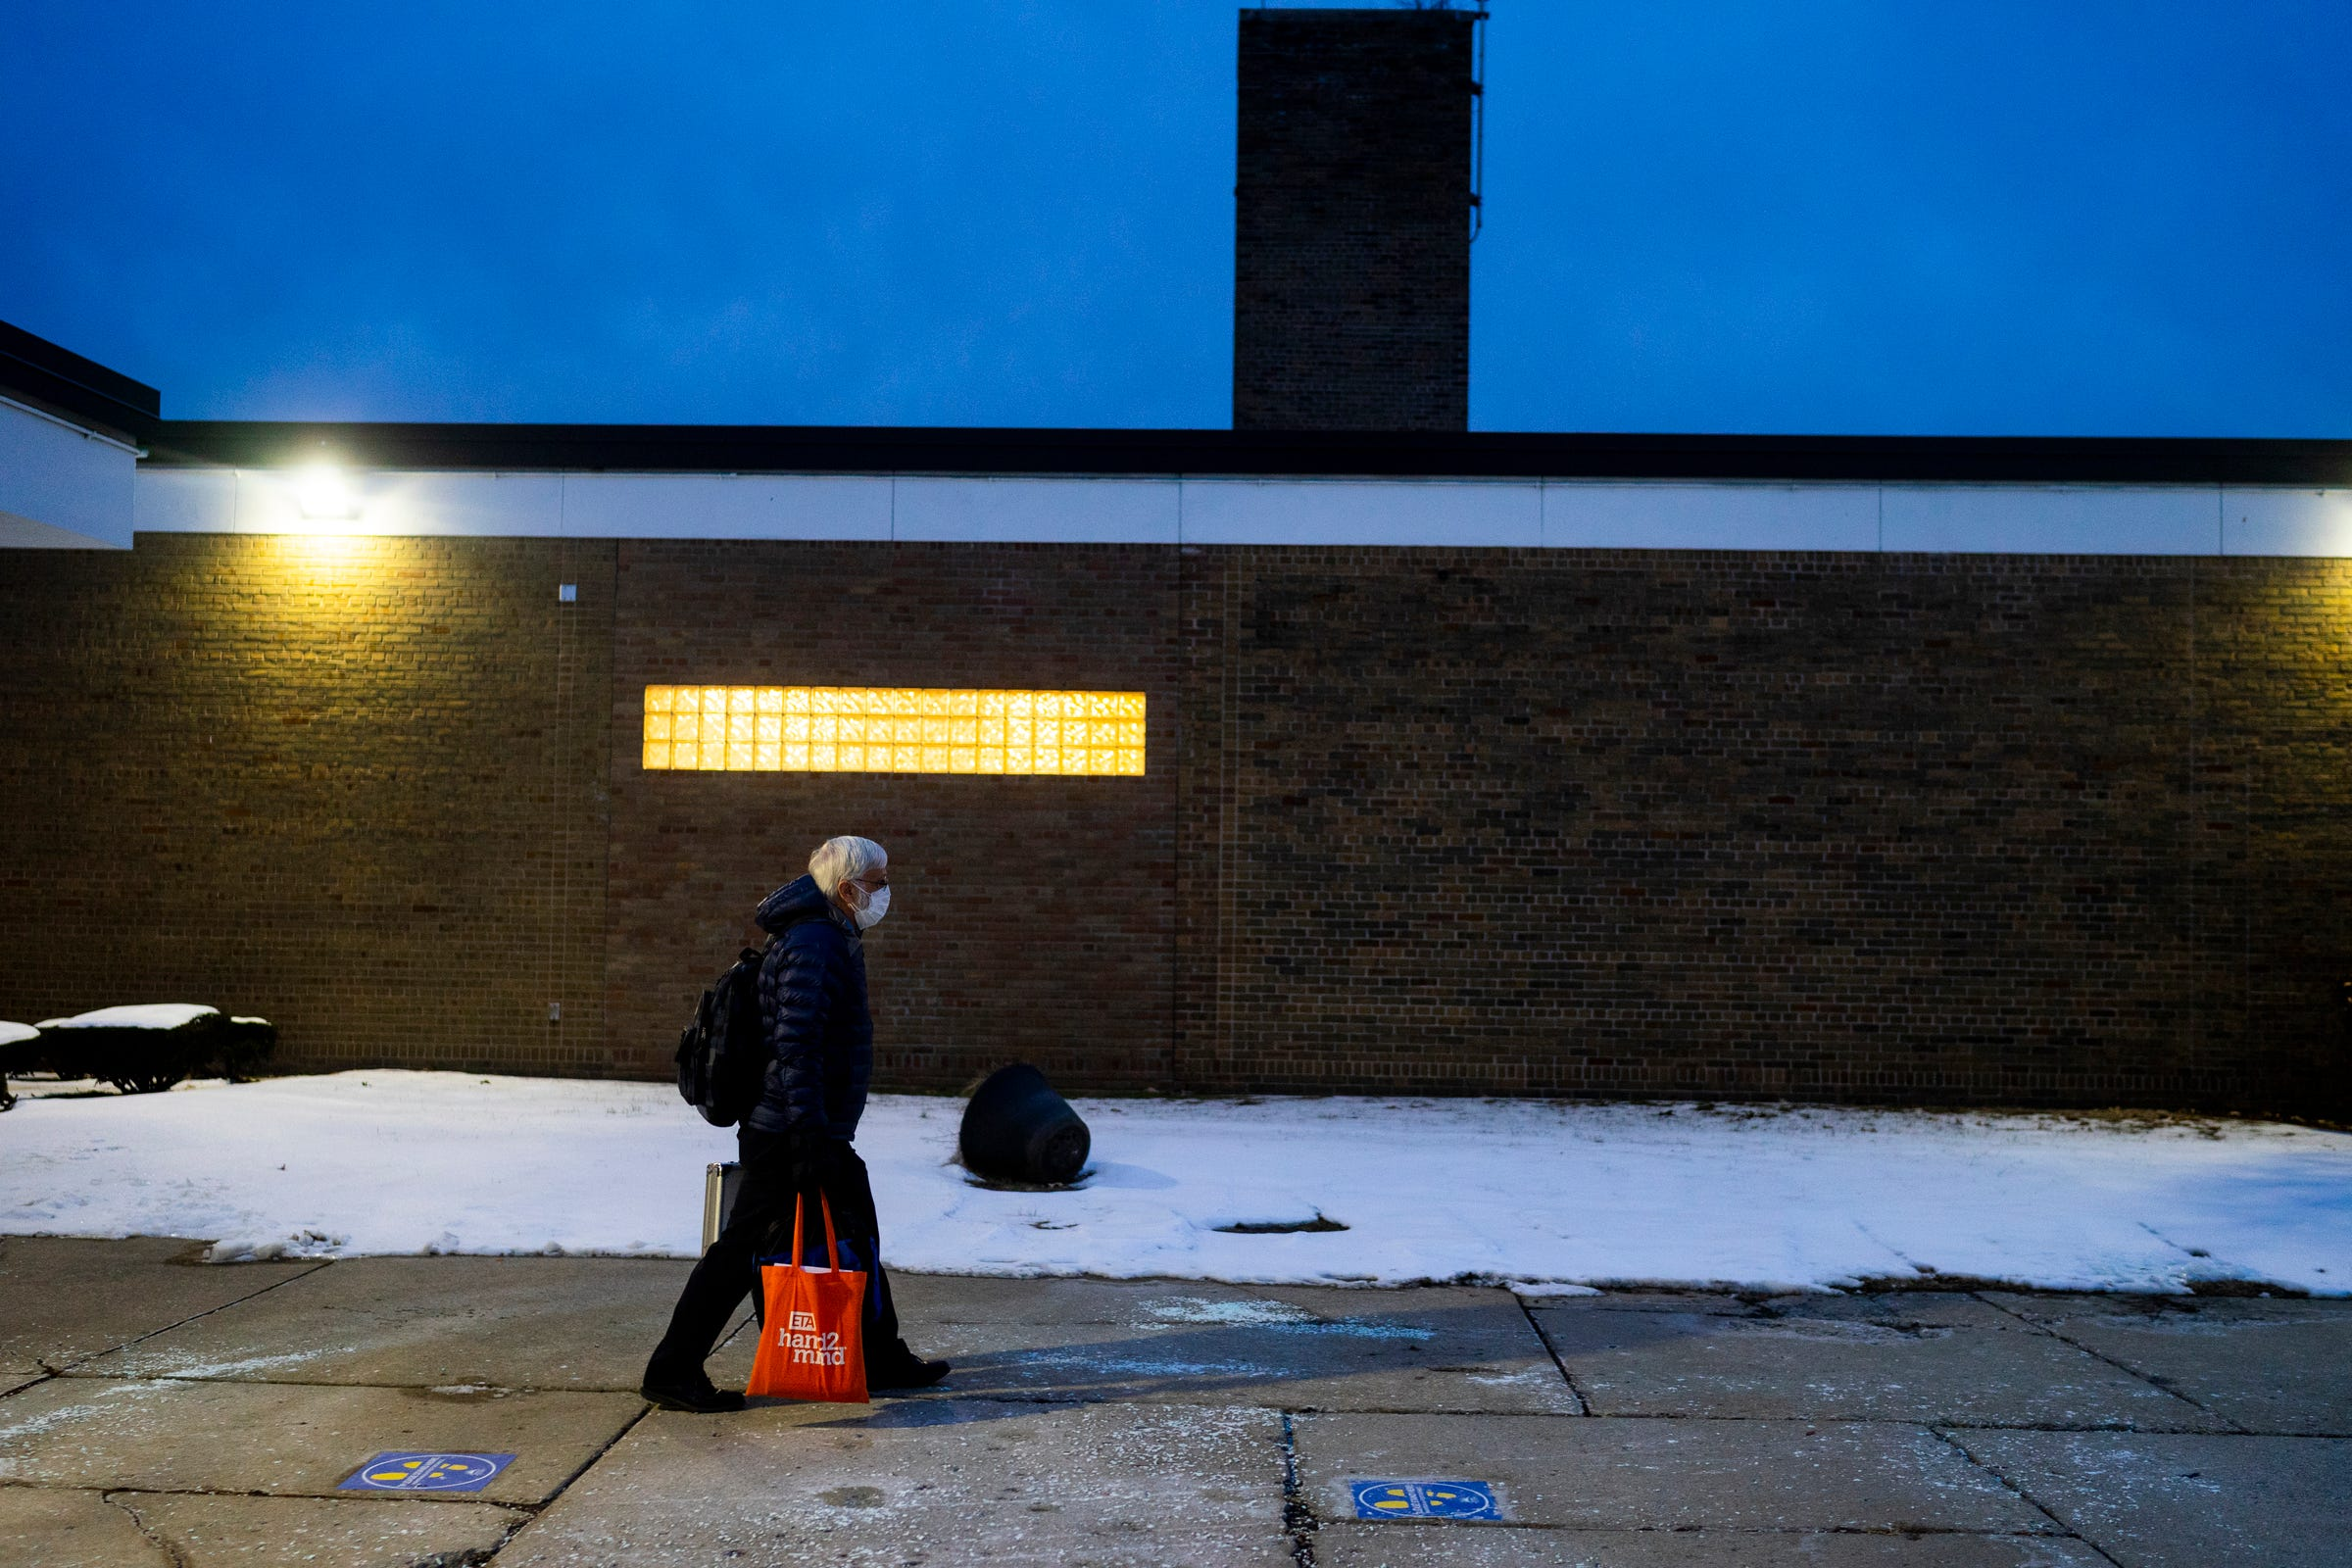 """Christopher Holstein walks to his car just before 6 p.m. after finishing a virtual practice for an upcoming competition in the Academic Games on Feb. 4, 2021 at Bates Academy in Detroit. """"A lot of teachers will retire this year. I'm not ready,"""" Holstein said. He an educator of 52 years and he's celebrating his 45th year as an Academic Games coach. """"It keeps me going."""""""